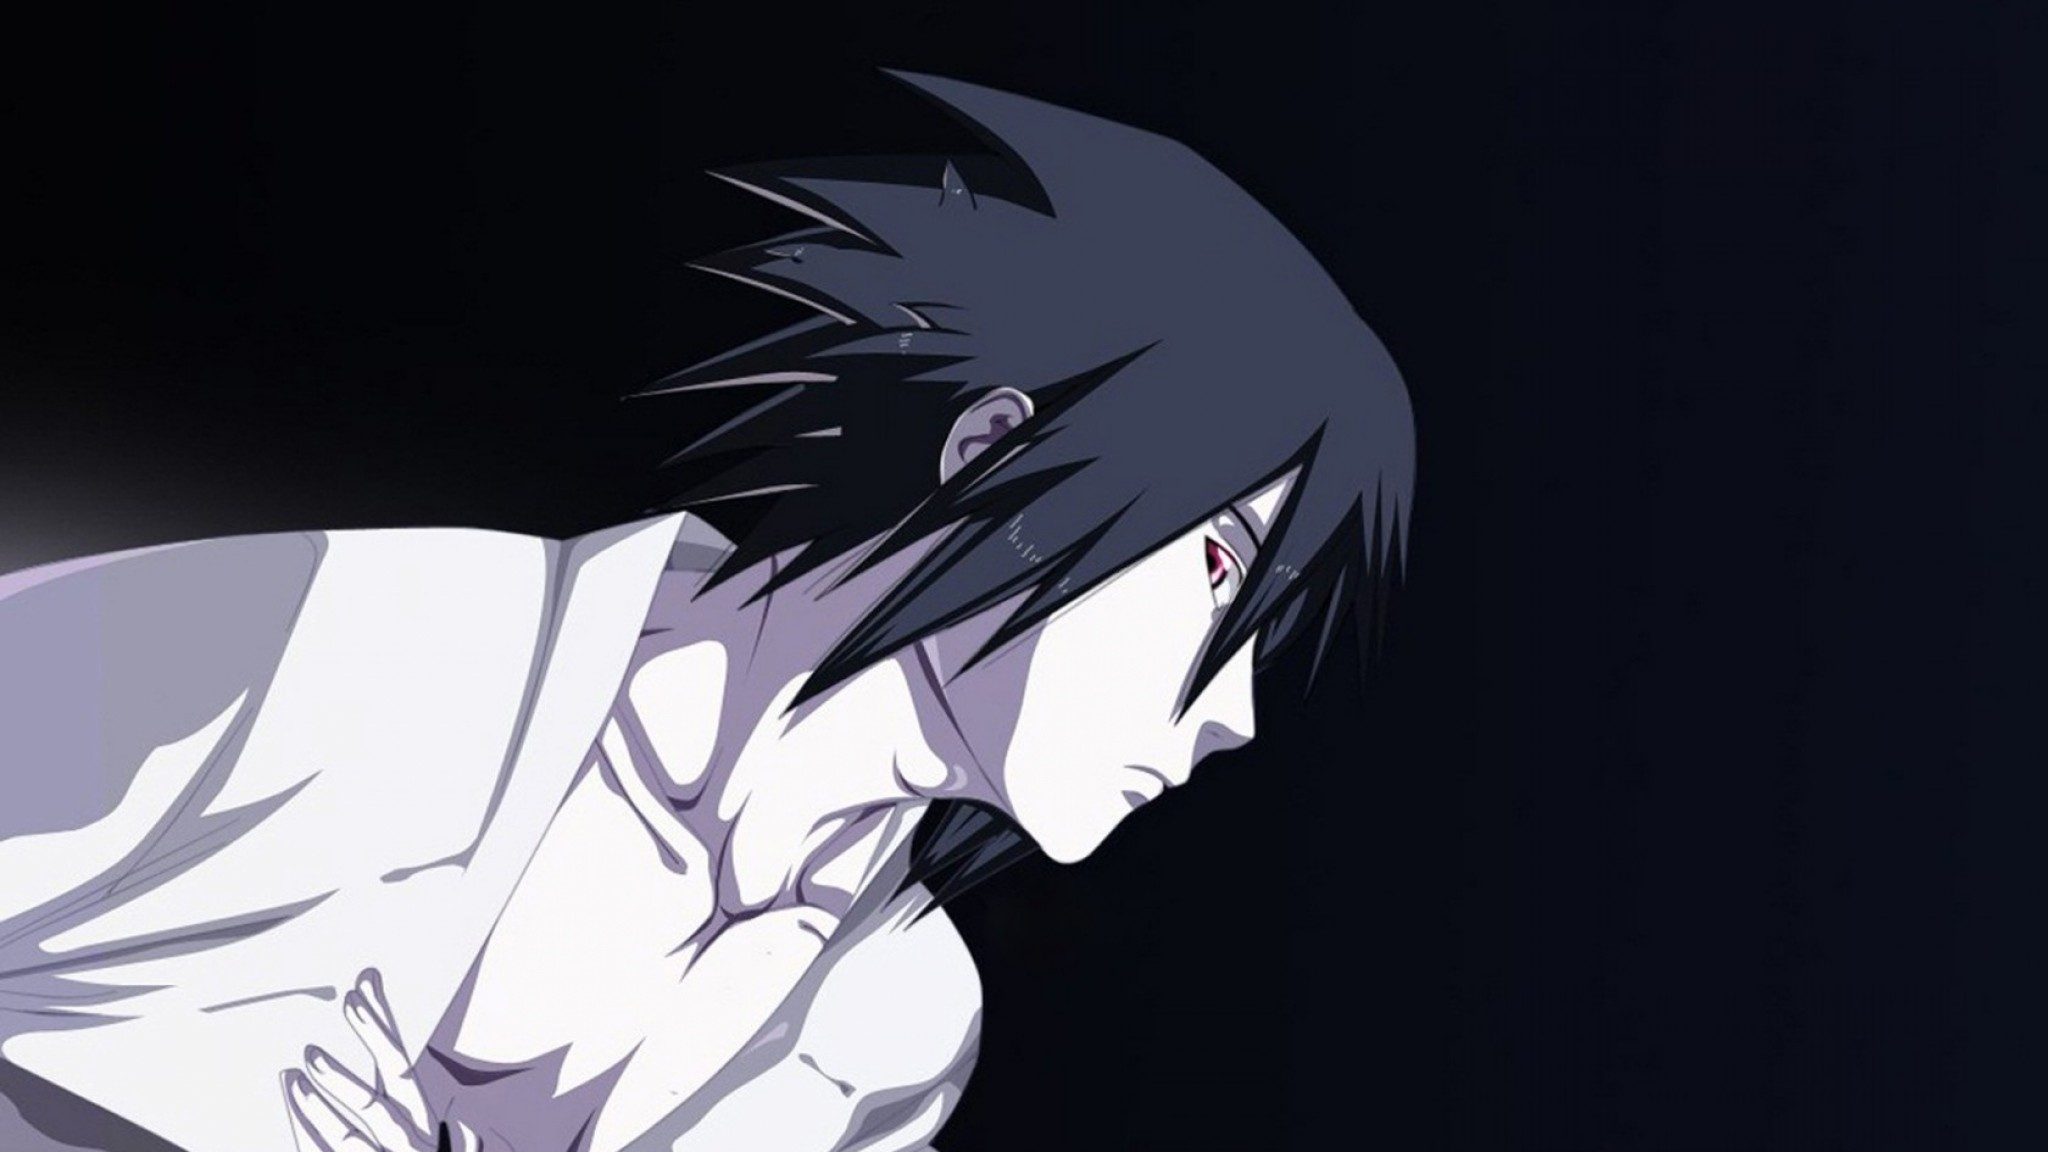 Uchiha Wallpapers (64+ Images